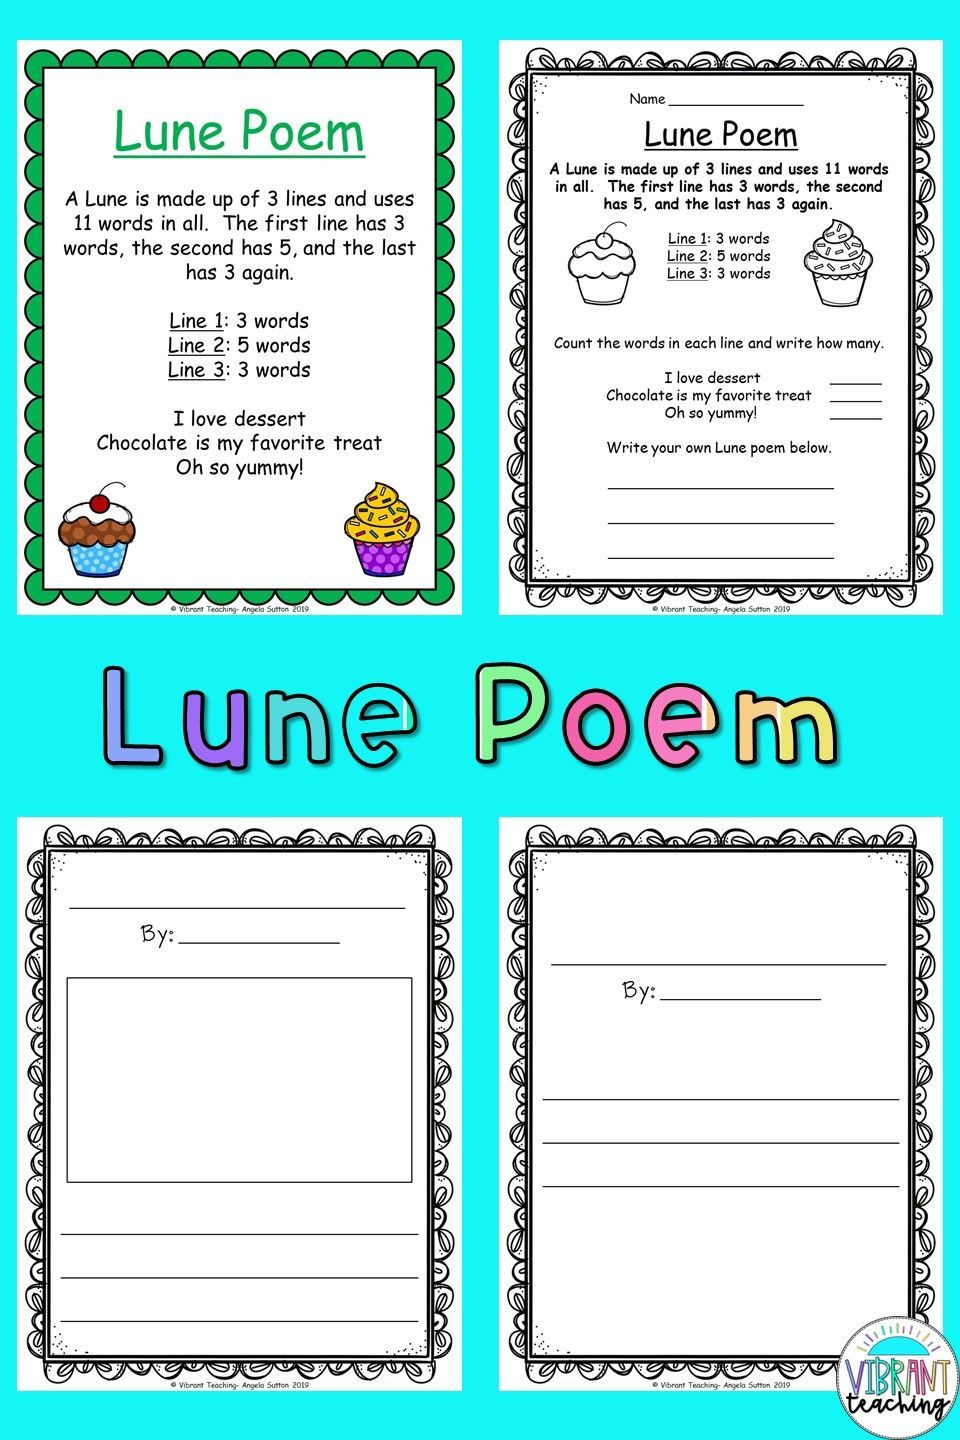 Lune Poems For Kids In 2020 Poetry For Kids Poem Activities Poetry Writing Activities